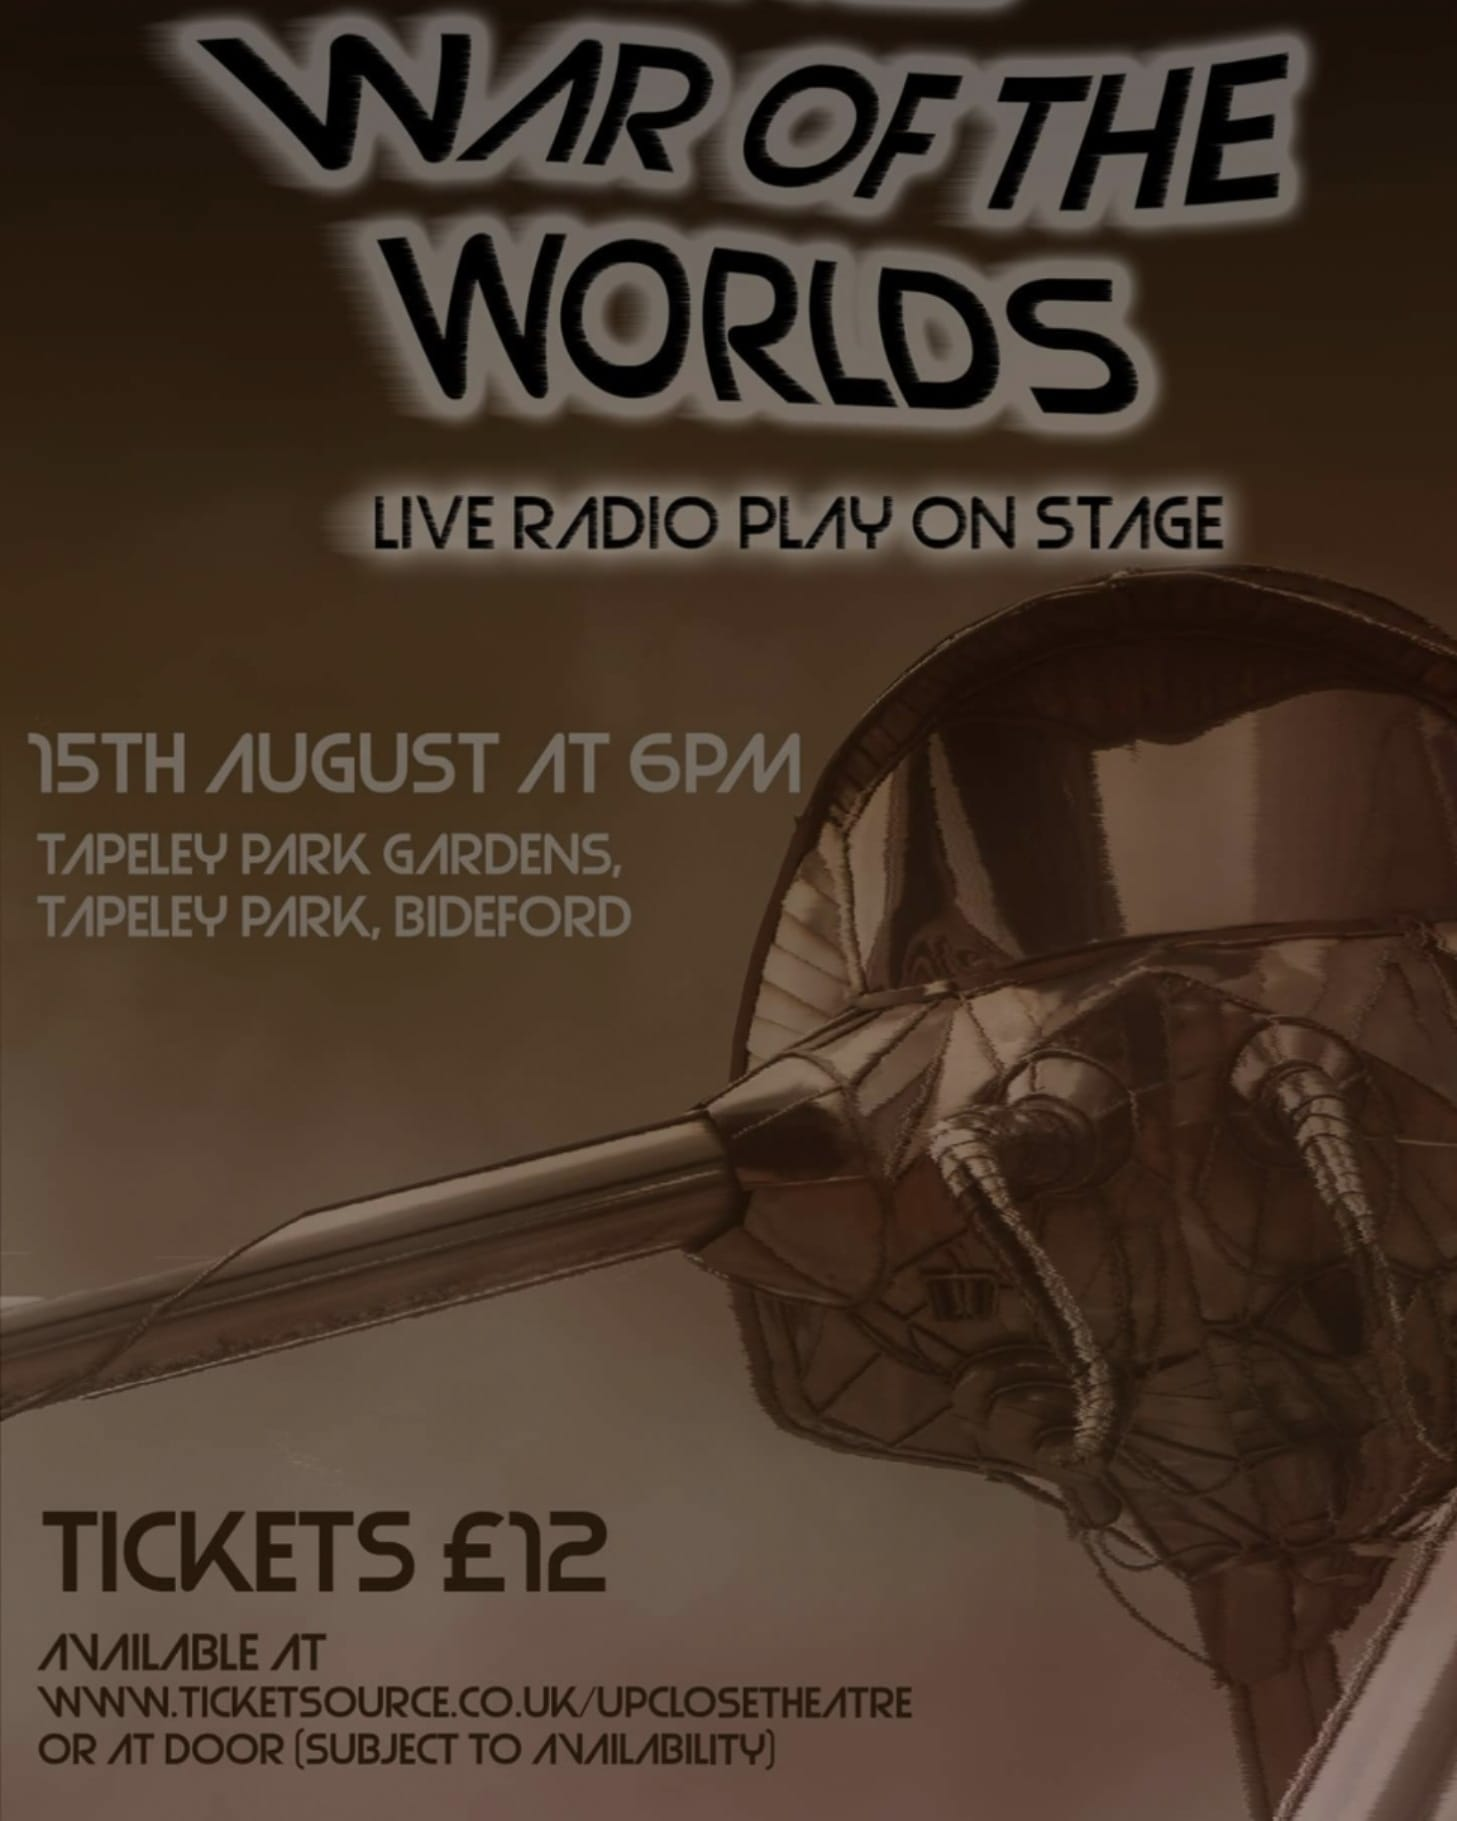 War of the Worlds – August 15th – Outdoor Theatre Season